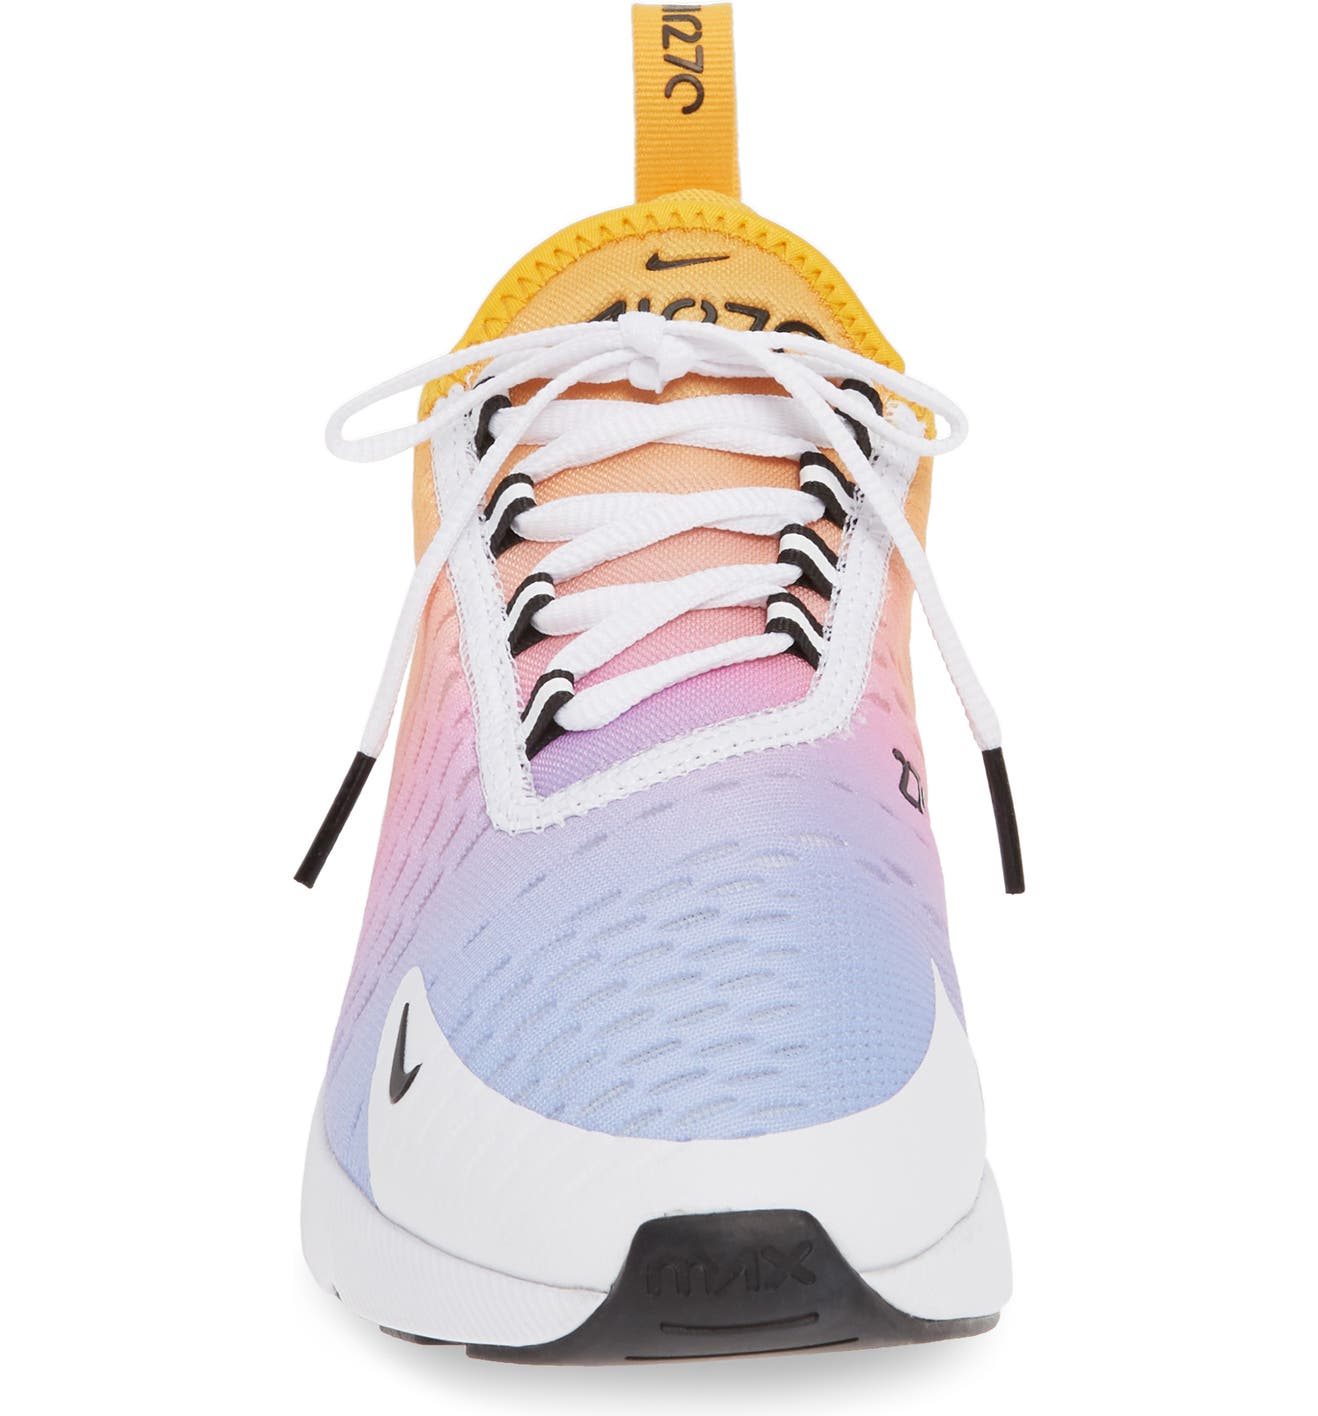 outlet store 93e68 9dc2f Air Max 270 Premium Sneaker